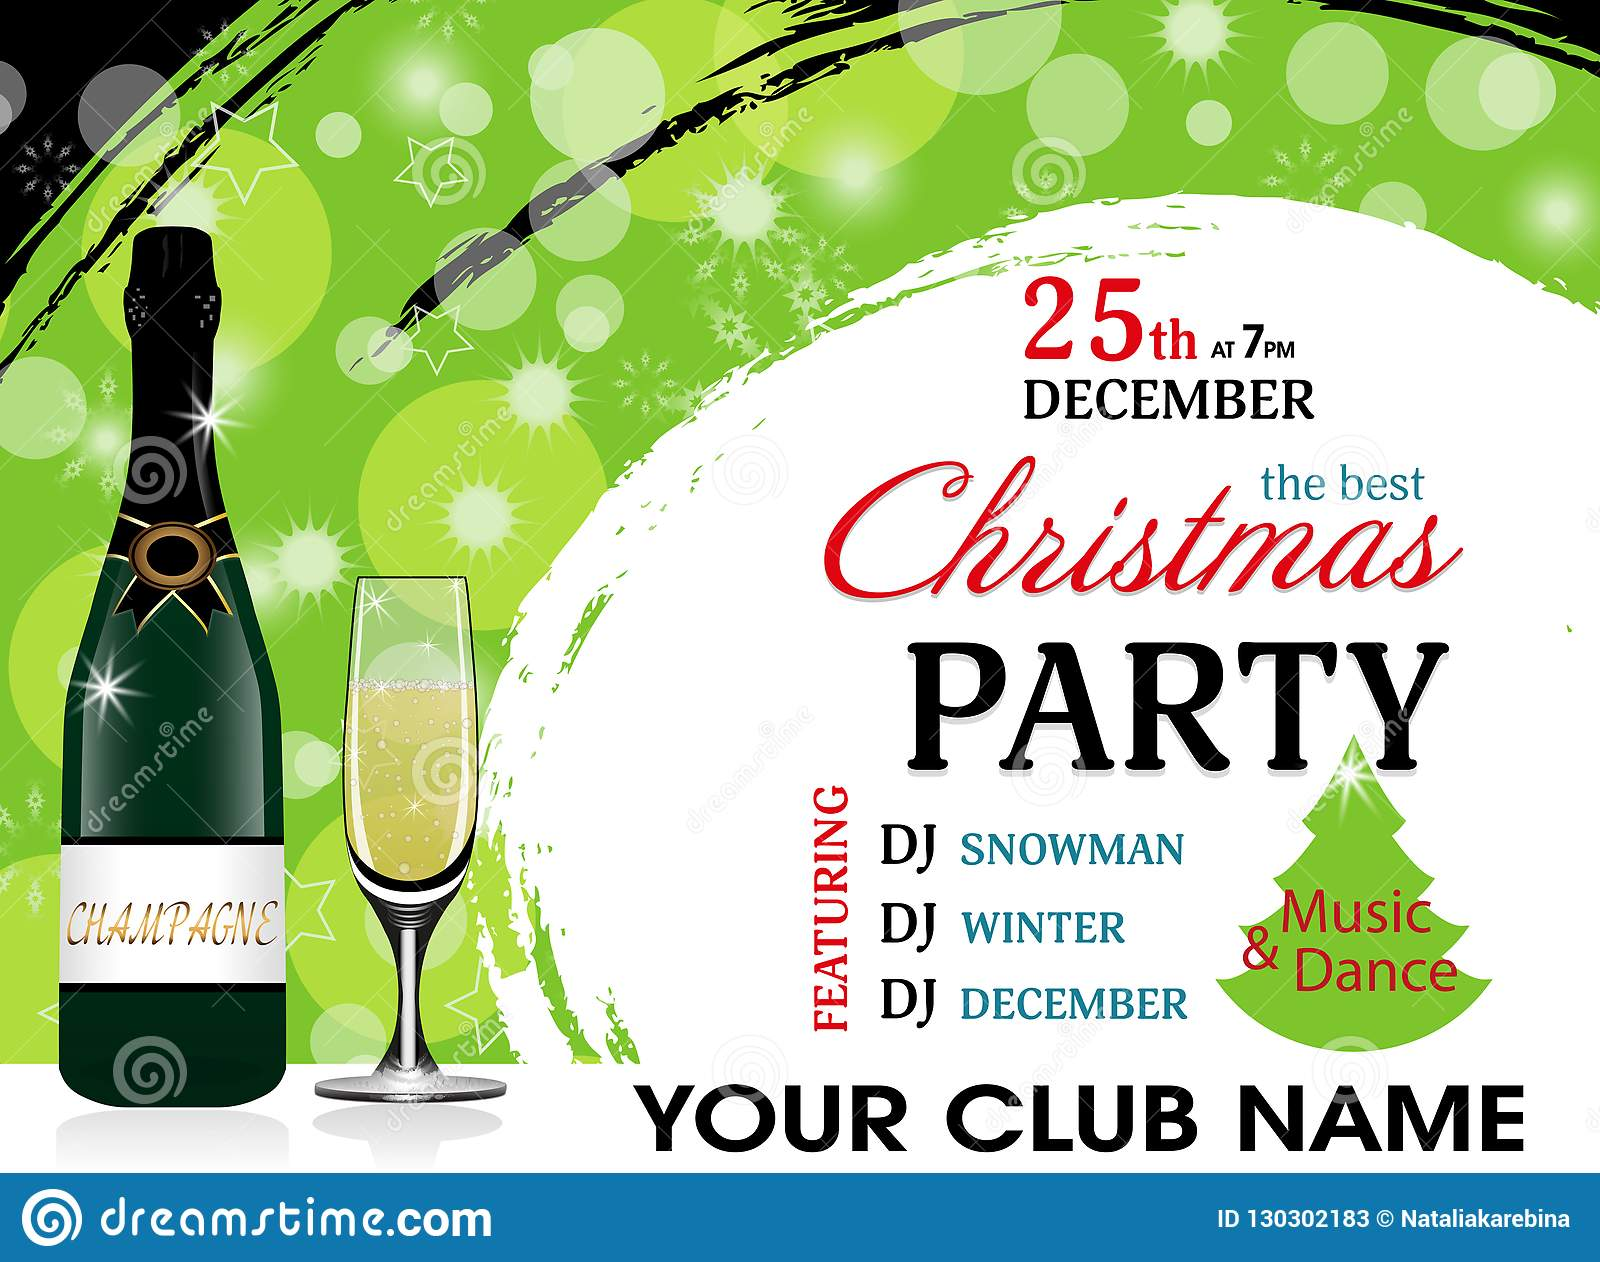 christmas party invitation green template with champagne bottle and wineglass new year background vector